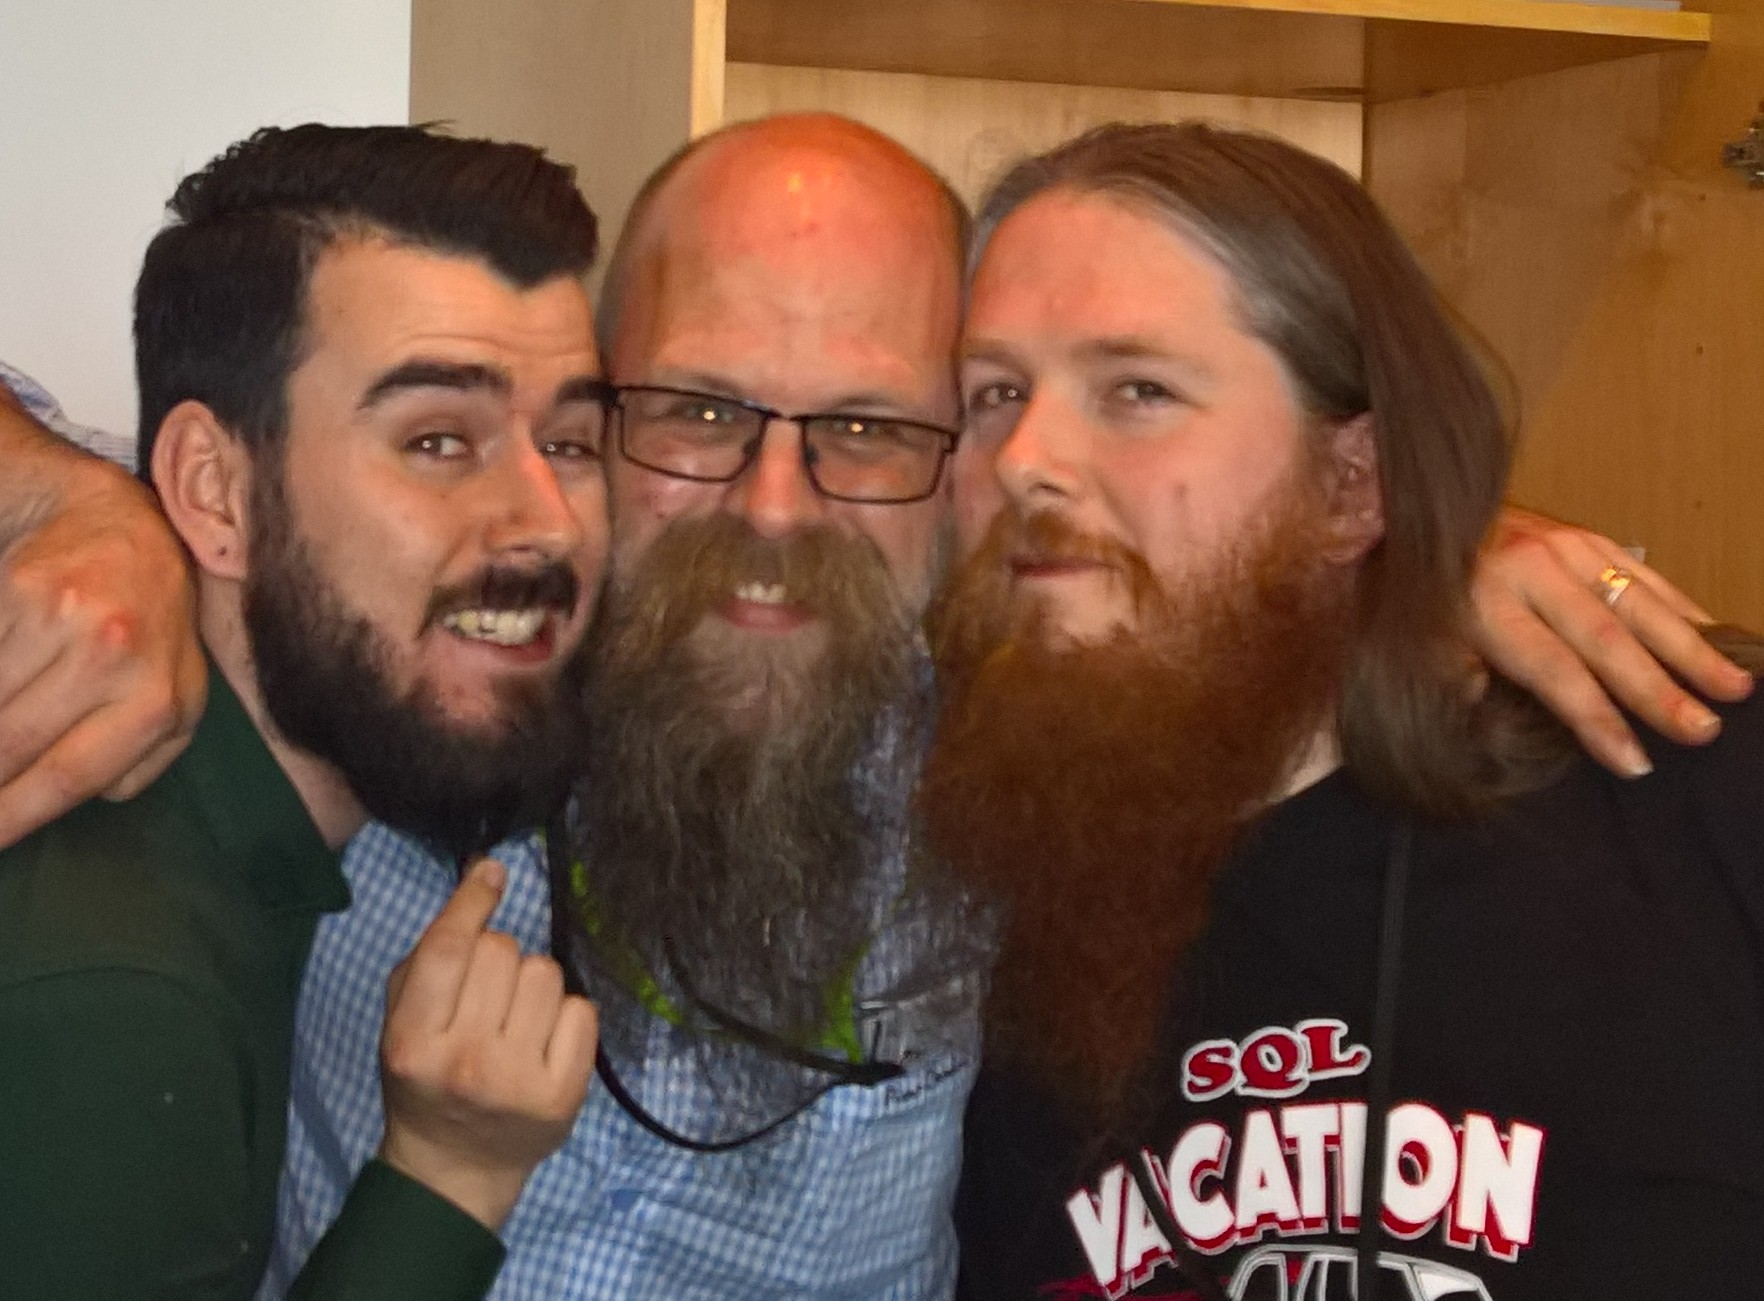 Return of battle of the beards with Tobiasz and Terry